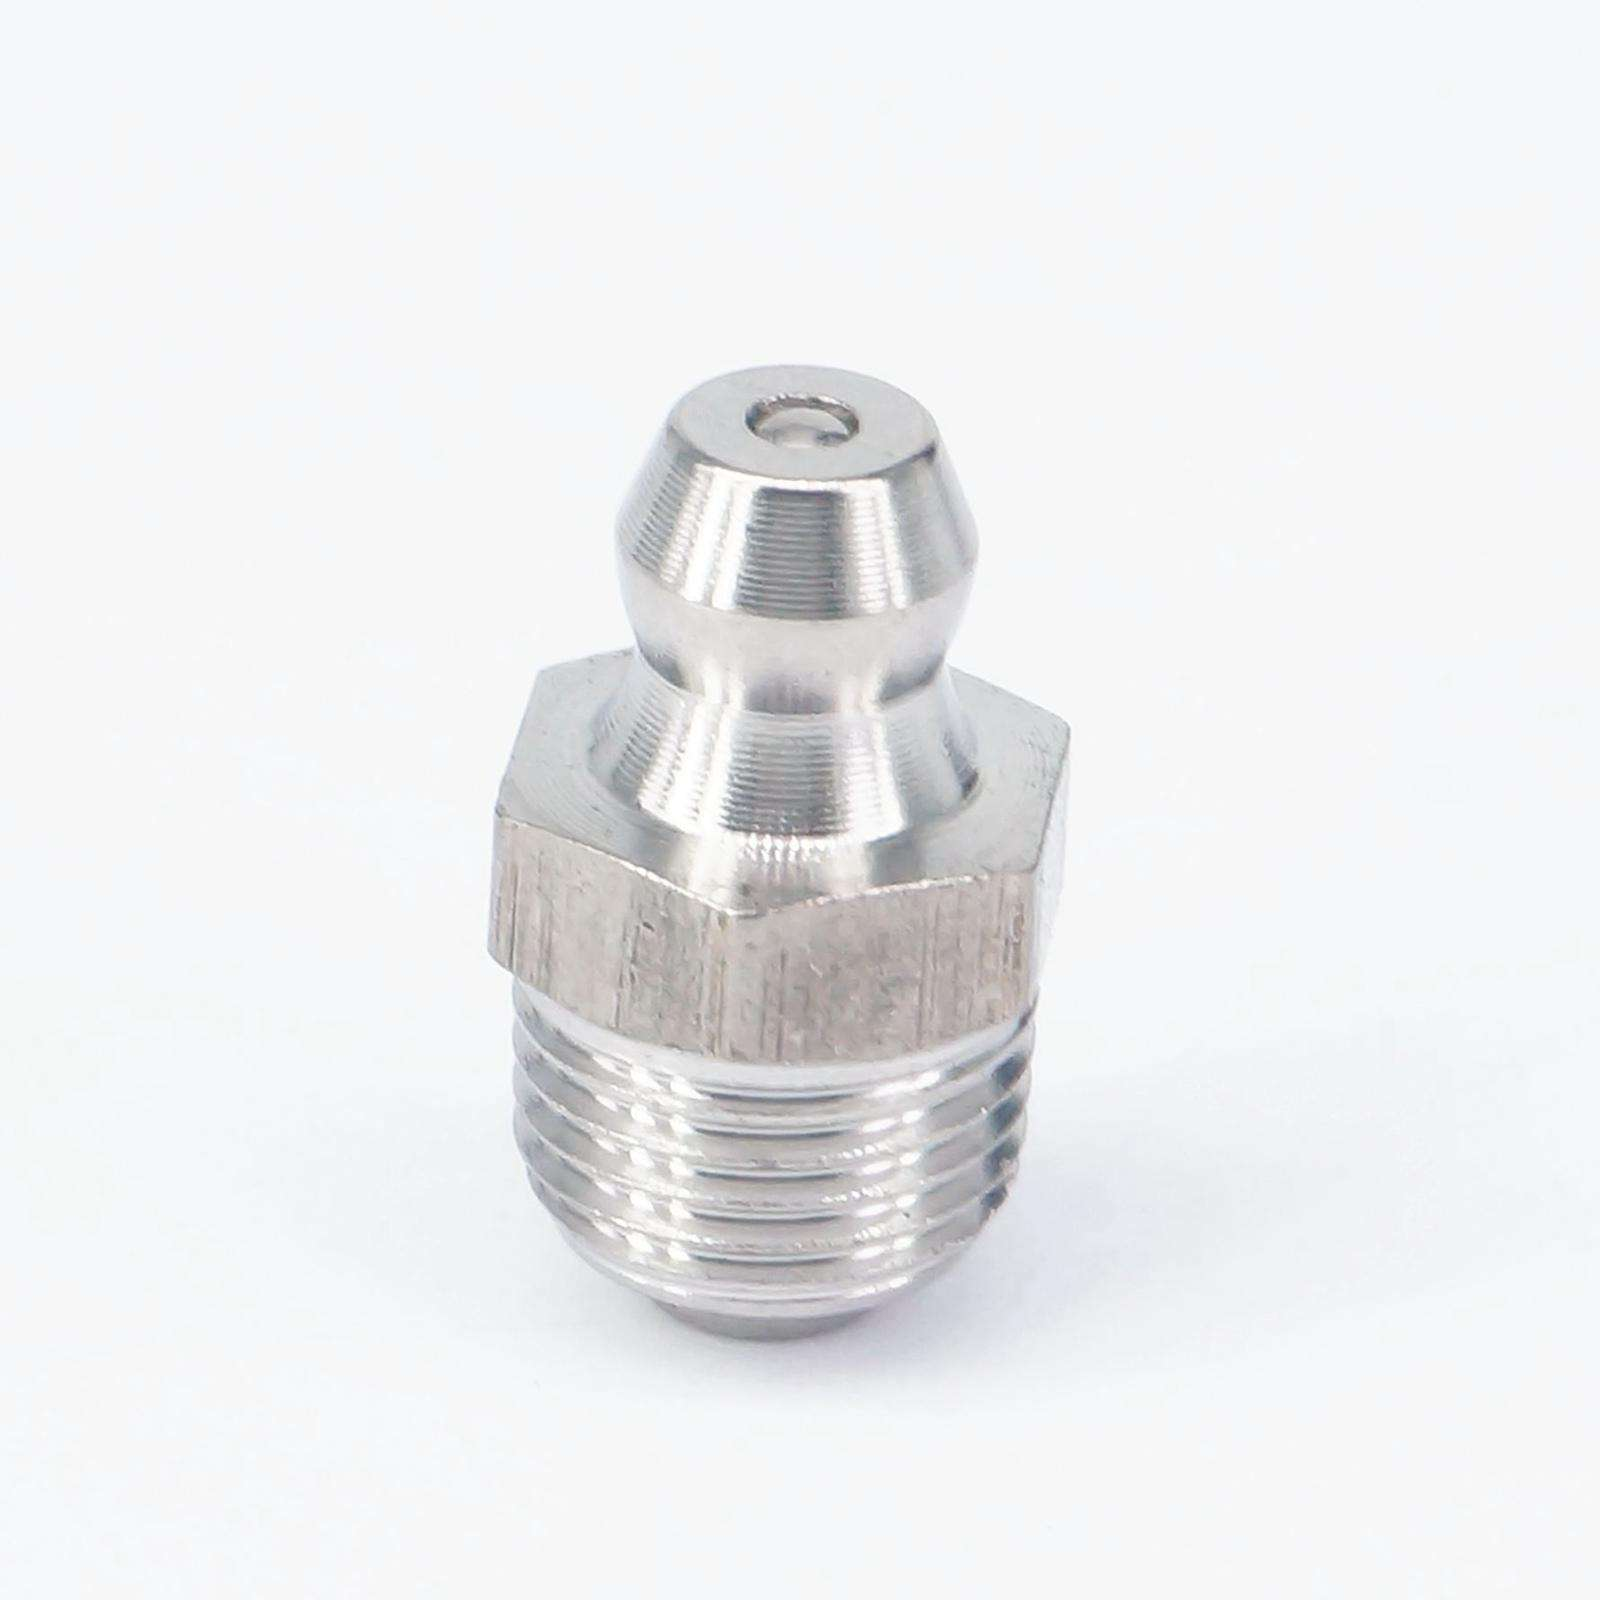 M6 x 1 Male Thread Stainless Steel Straight 45 Degree 90 Degree Angle Hydraulic Grease Nipple Fitting